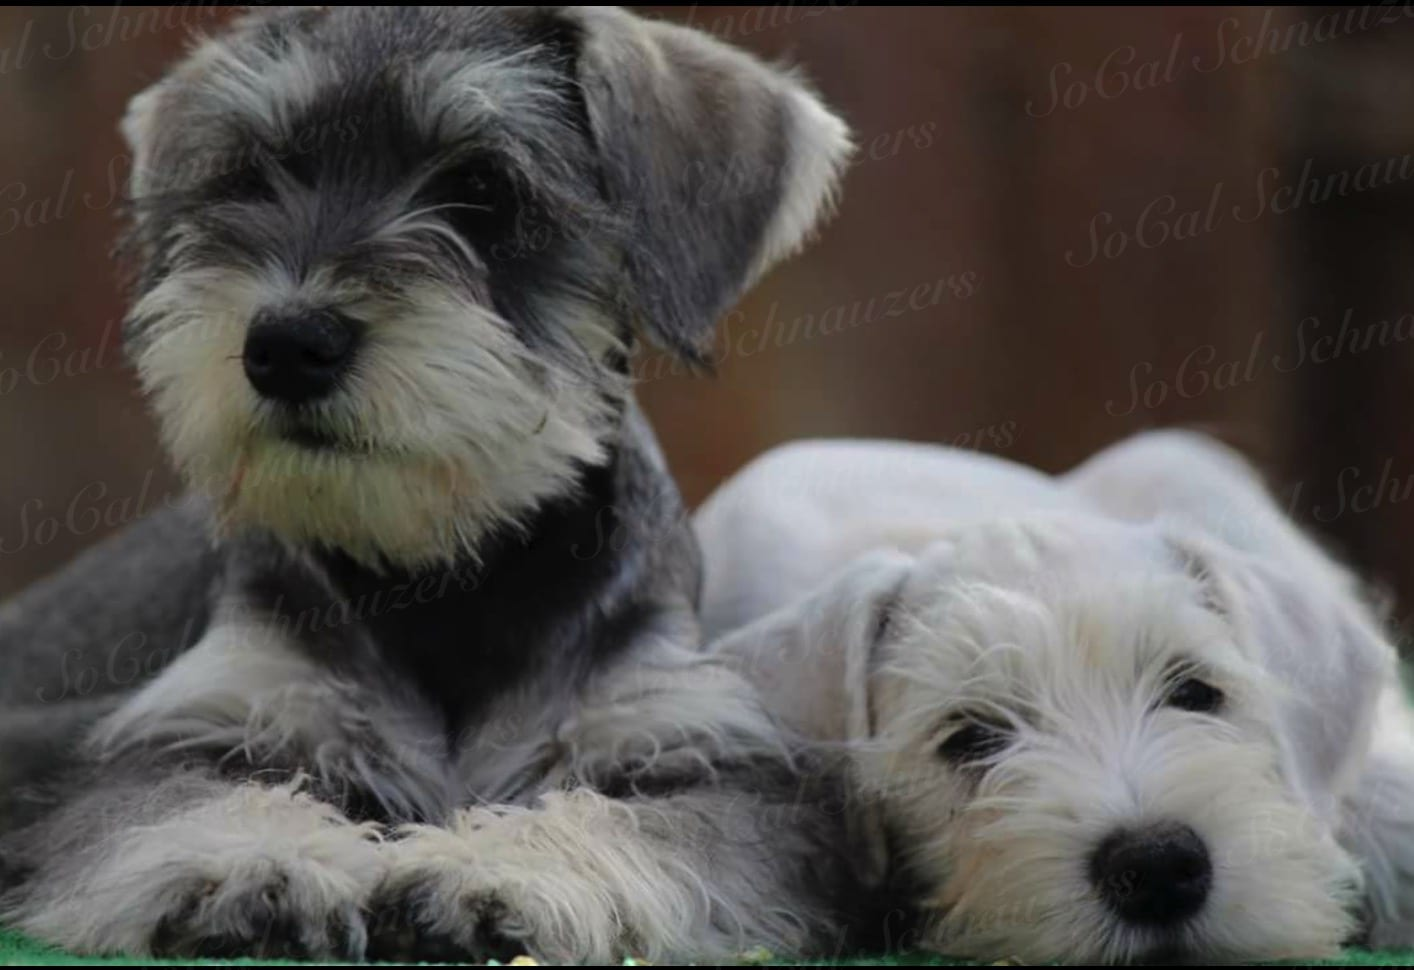 Two schnauzers next to each other